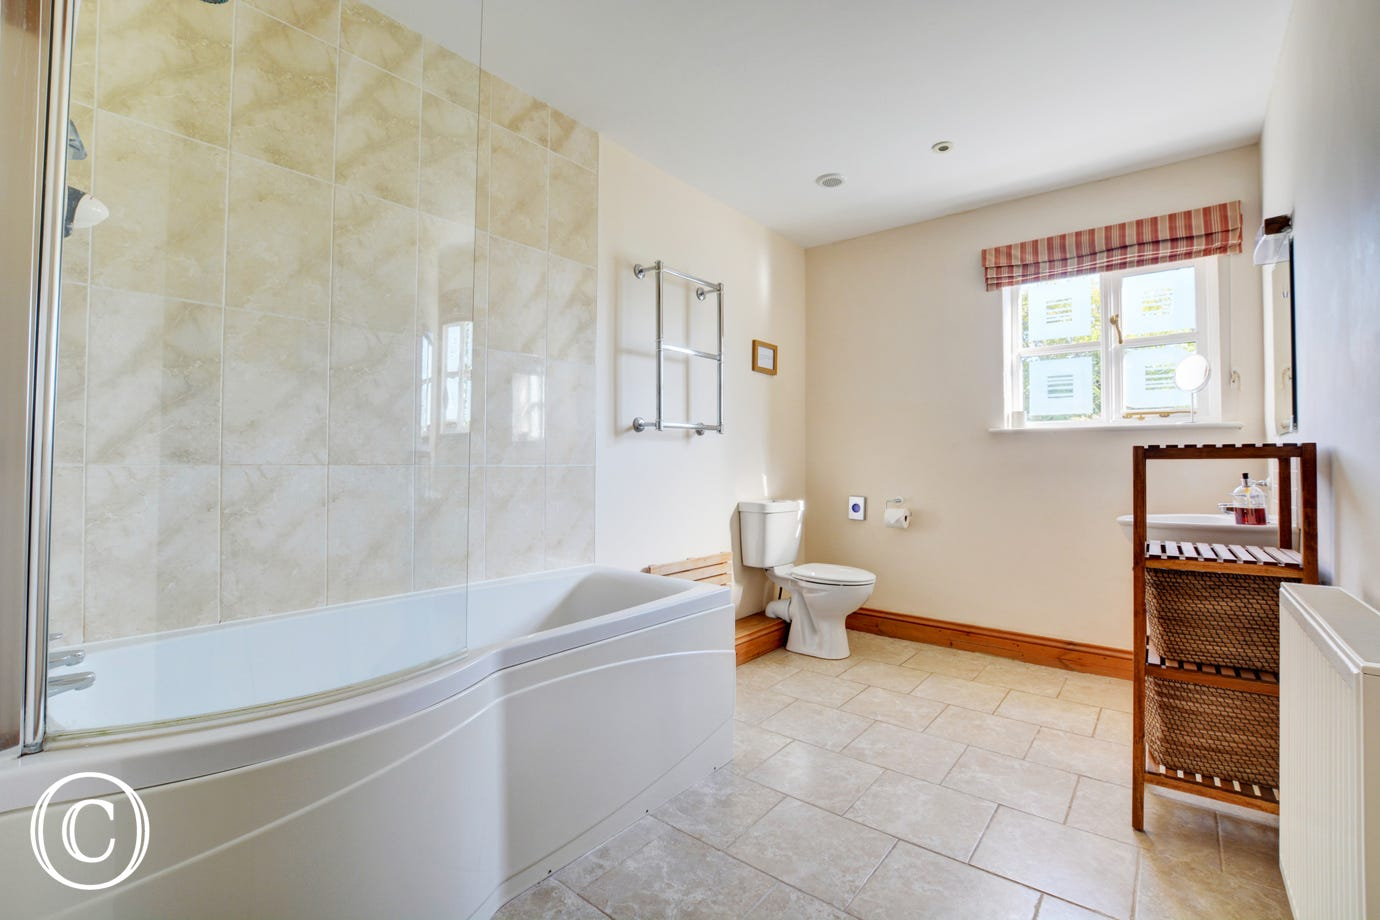 Stunning modern bathroom with bath and overbath shower